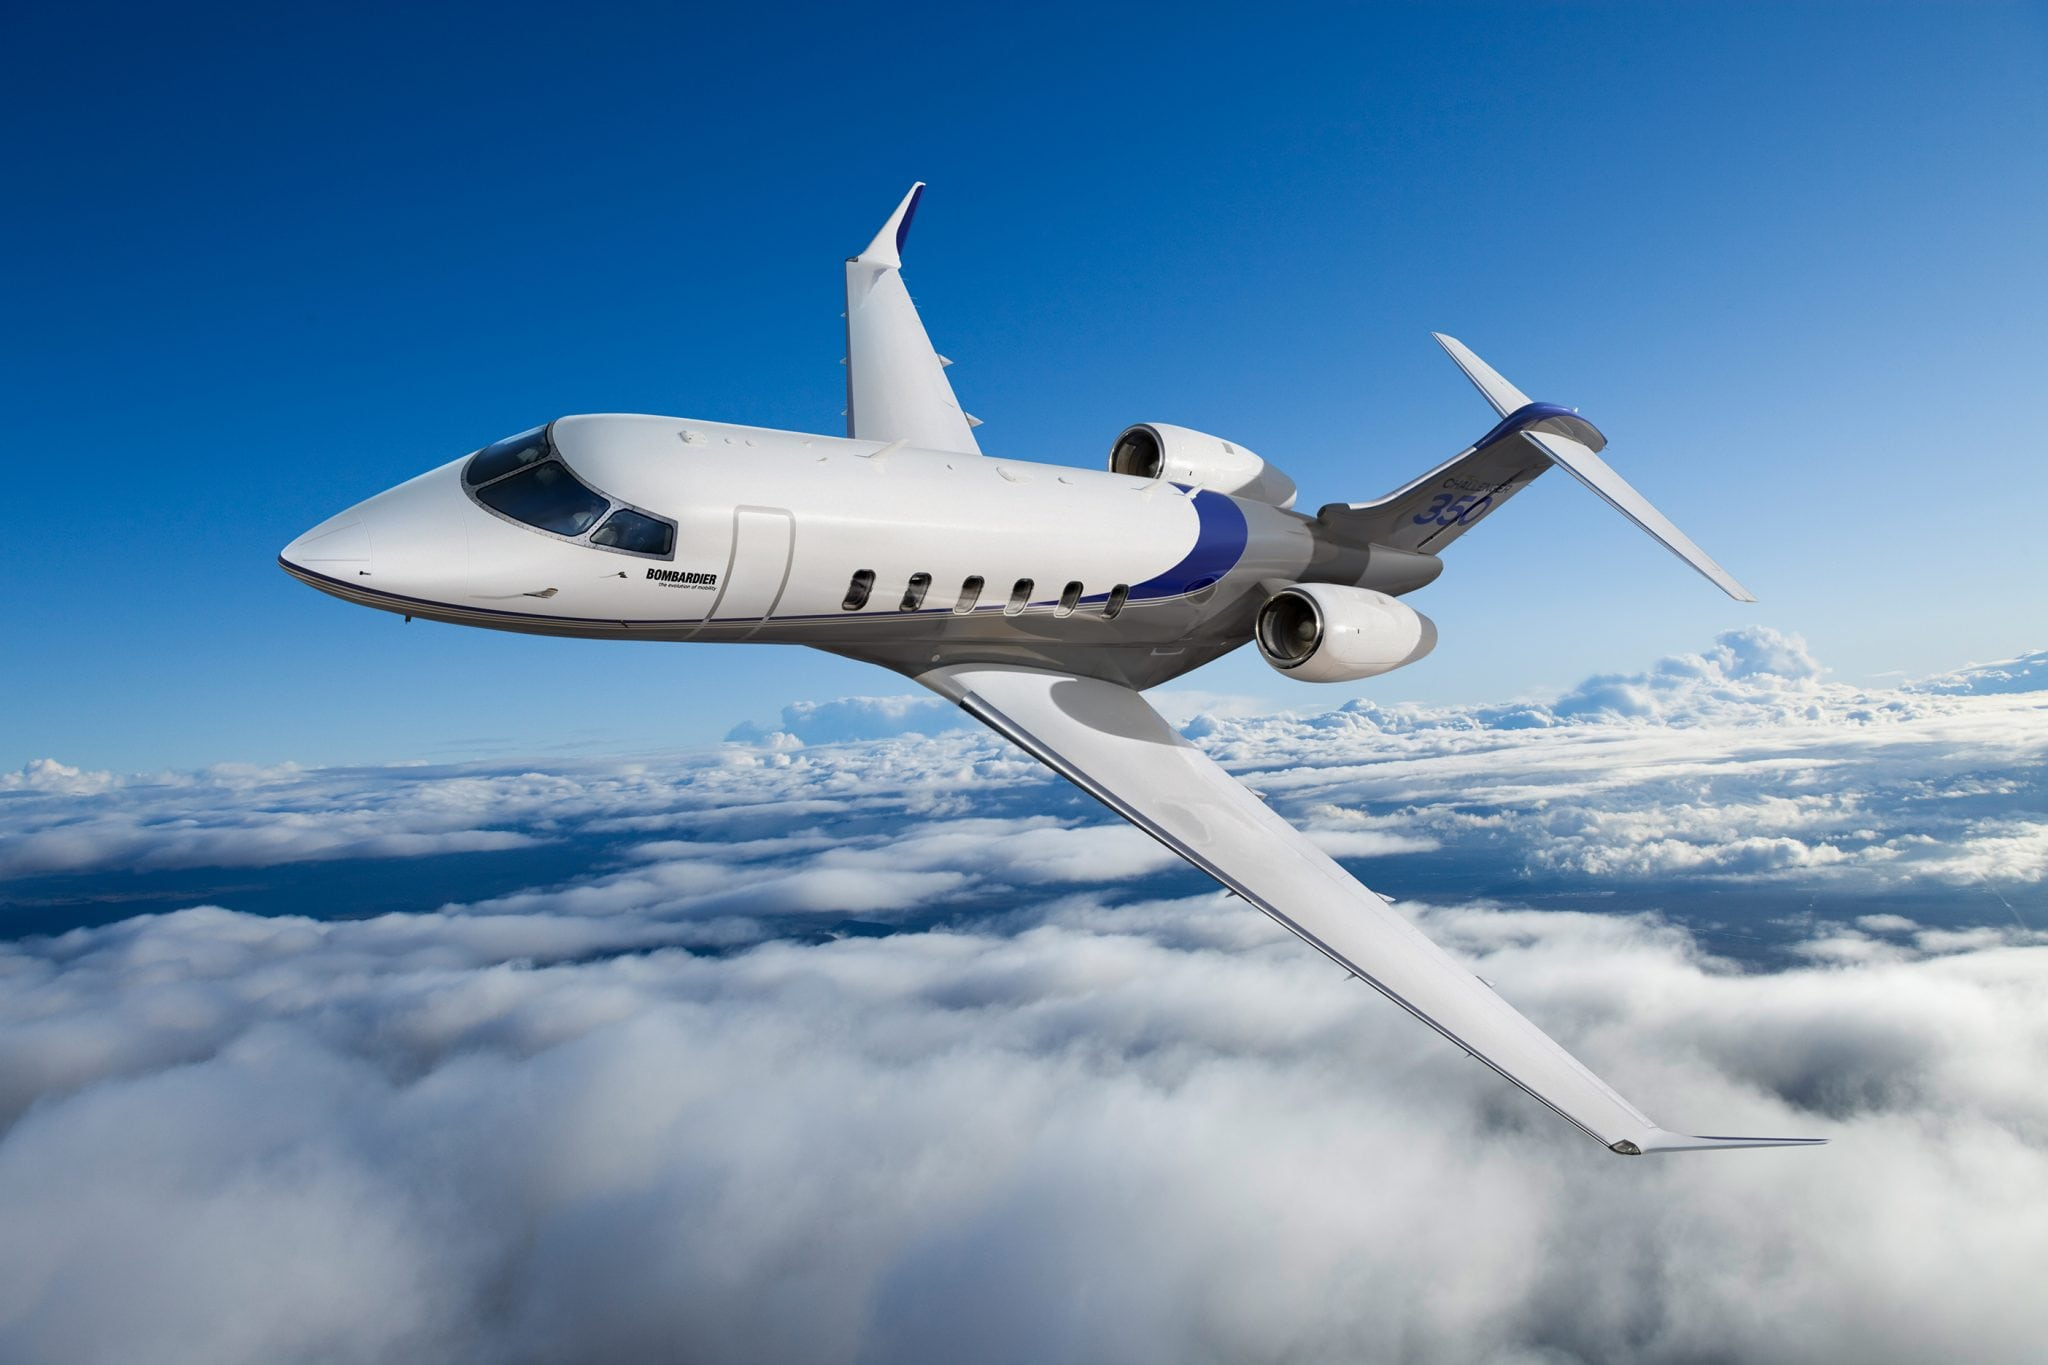 Bombardier's Challenger 350 jet in flight